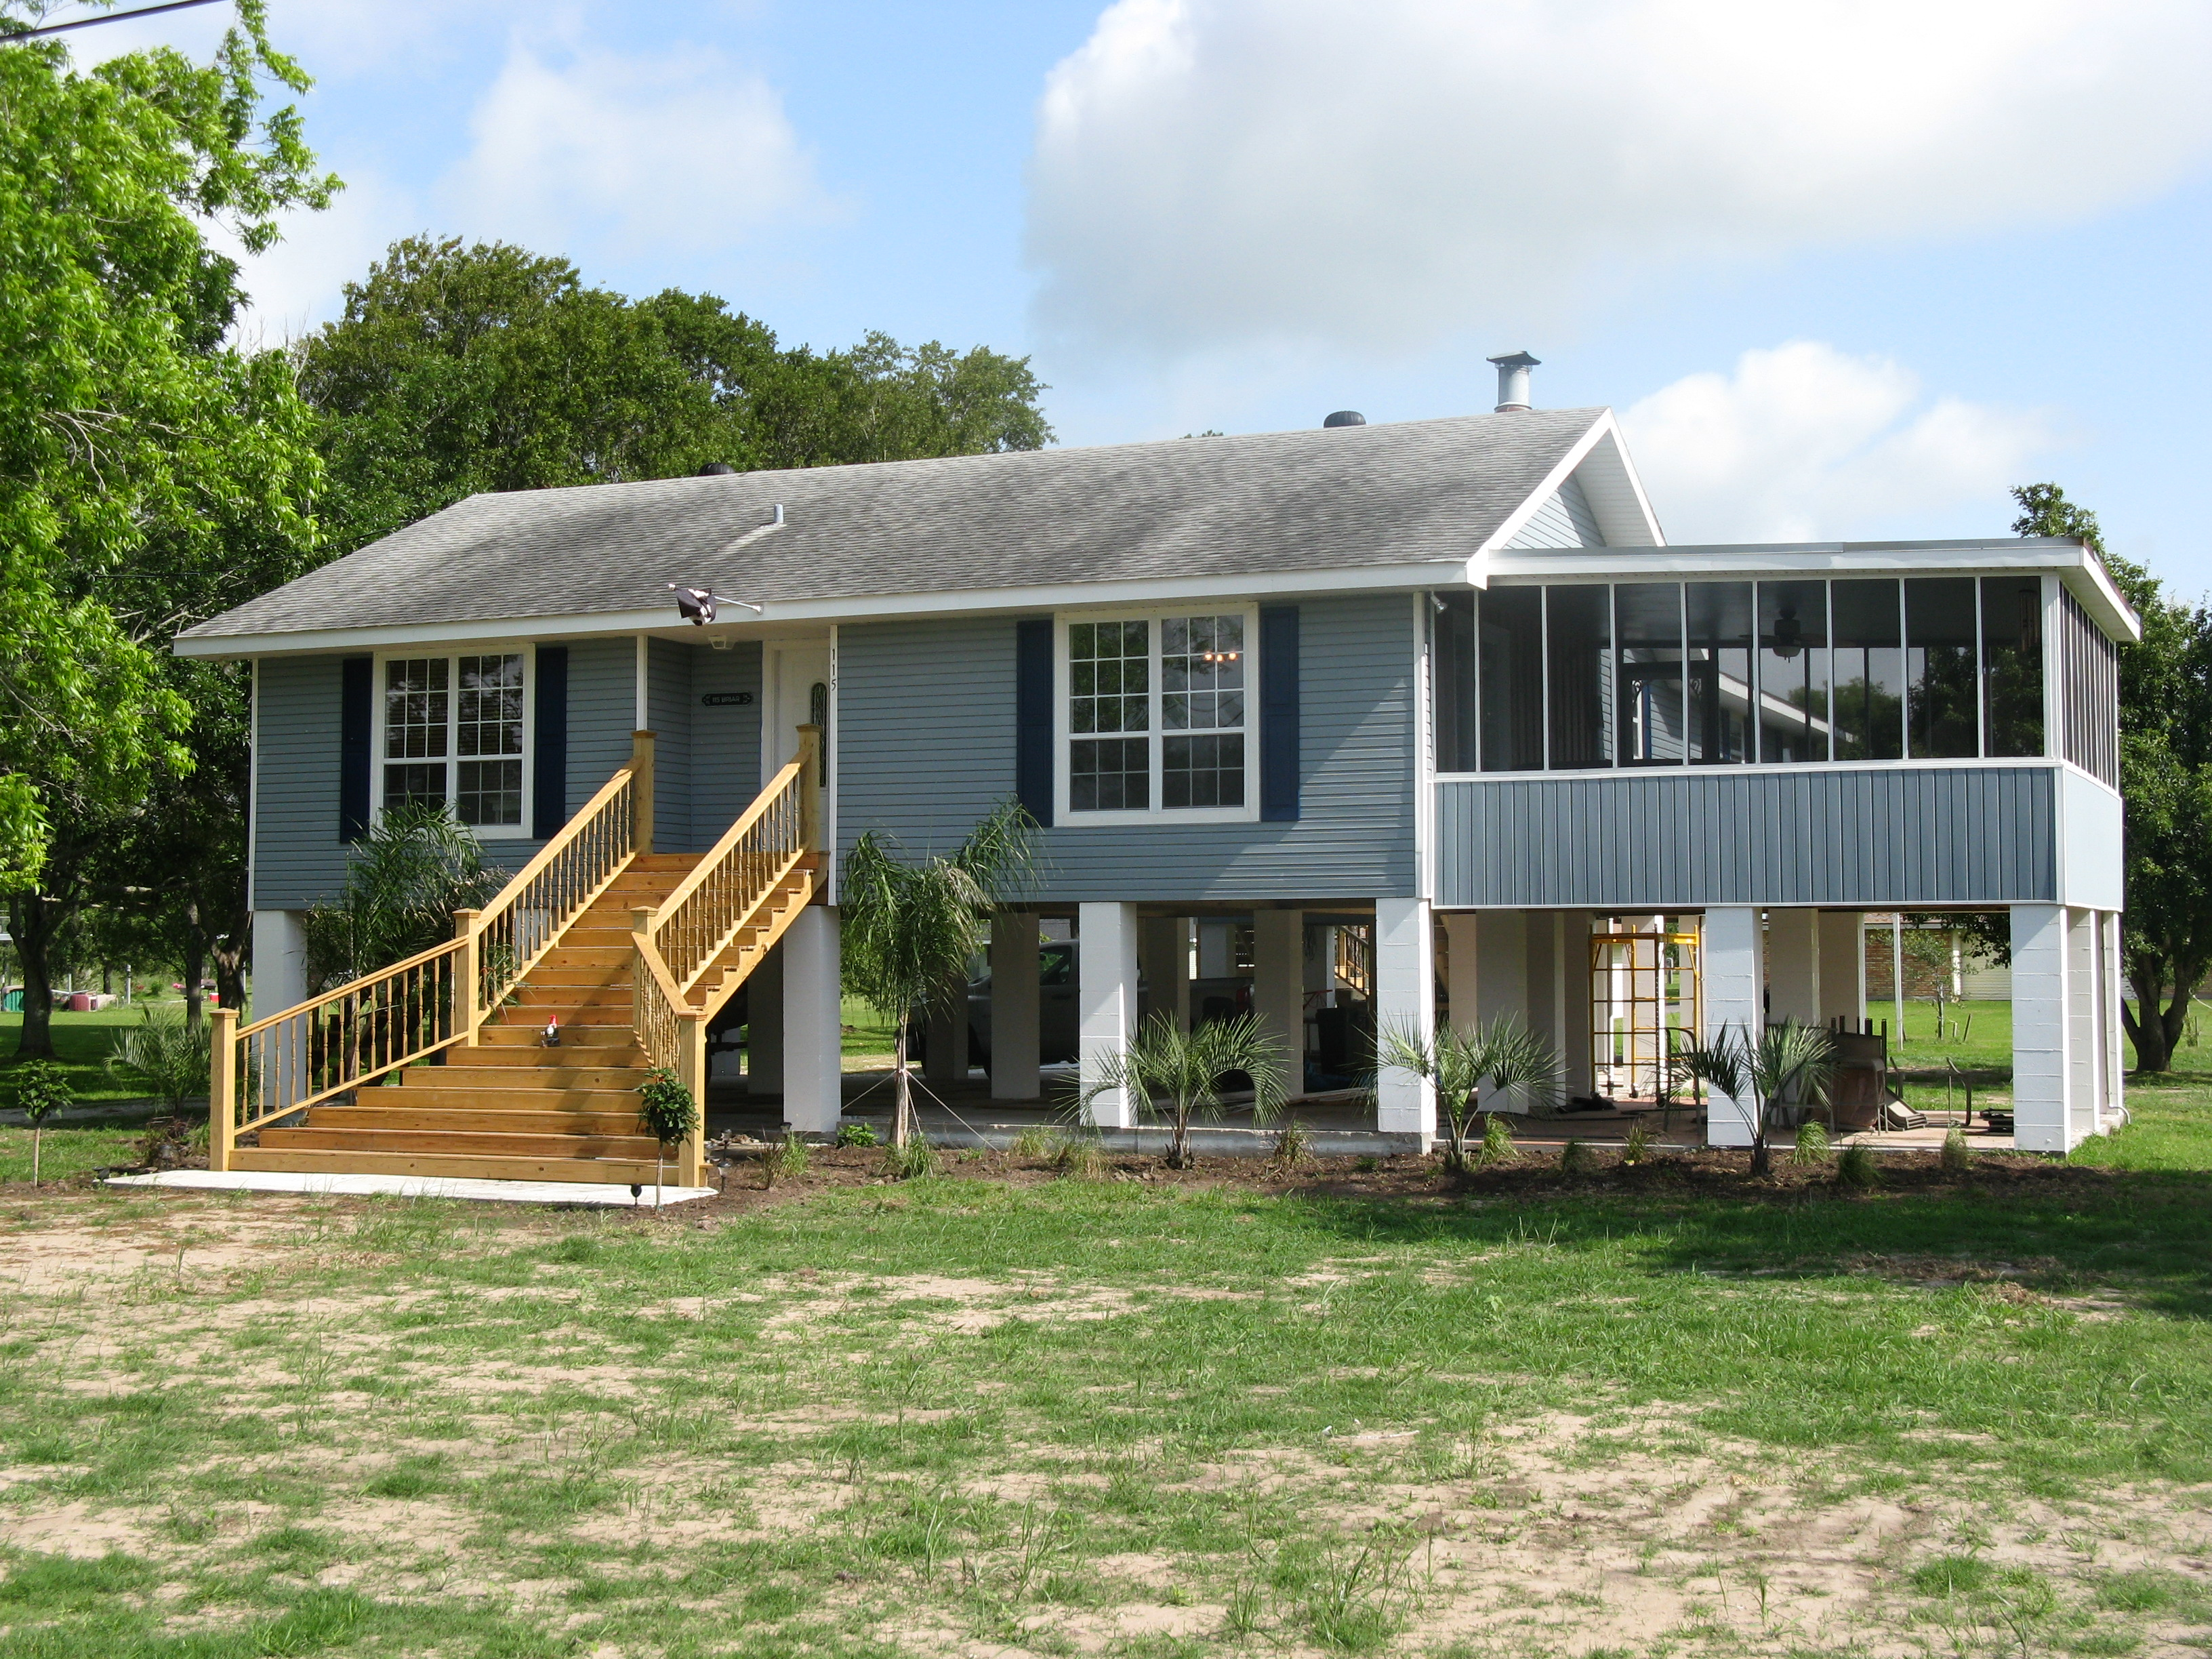 Cameron Parish home tour to feature Hurricane Ike 'survivors' May 17